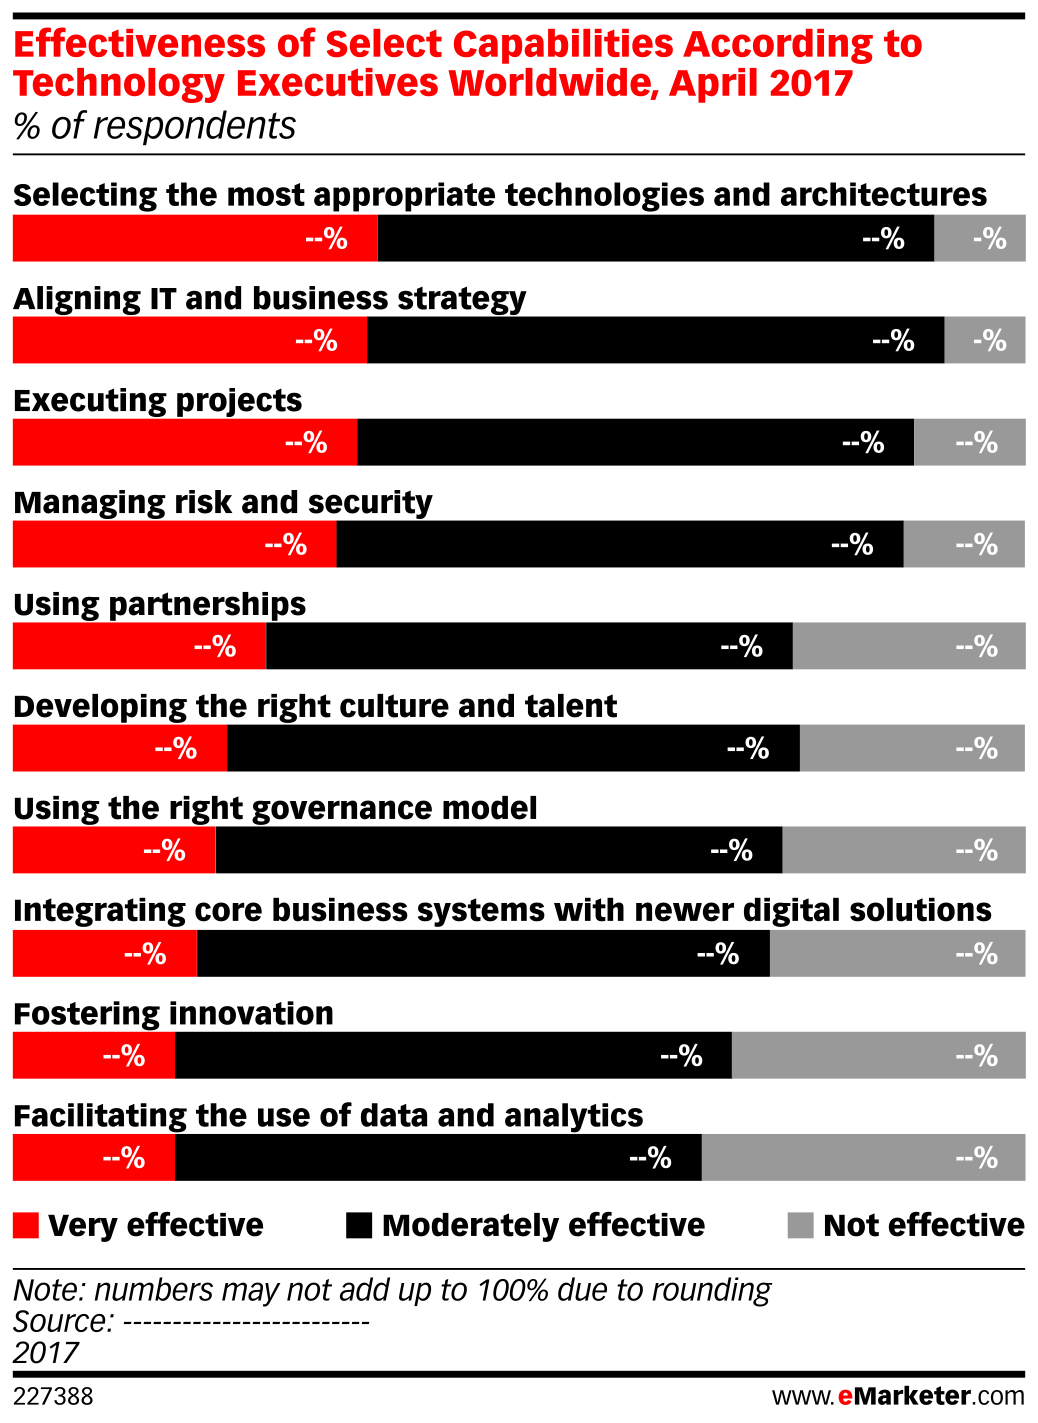 Effectiveness of Select Capabilities According to Technology Executives Worldwide, April 2017 (% of respondents)